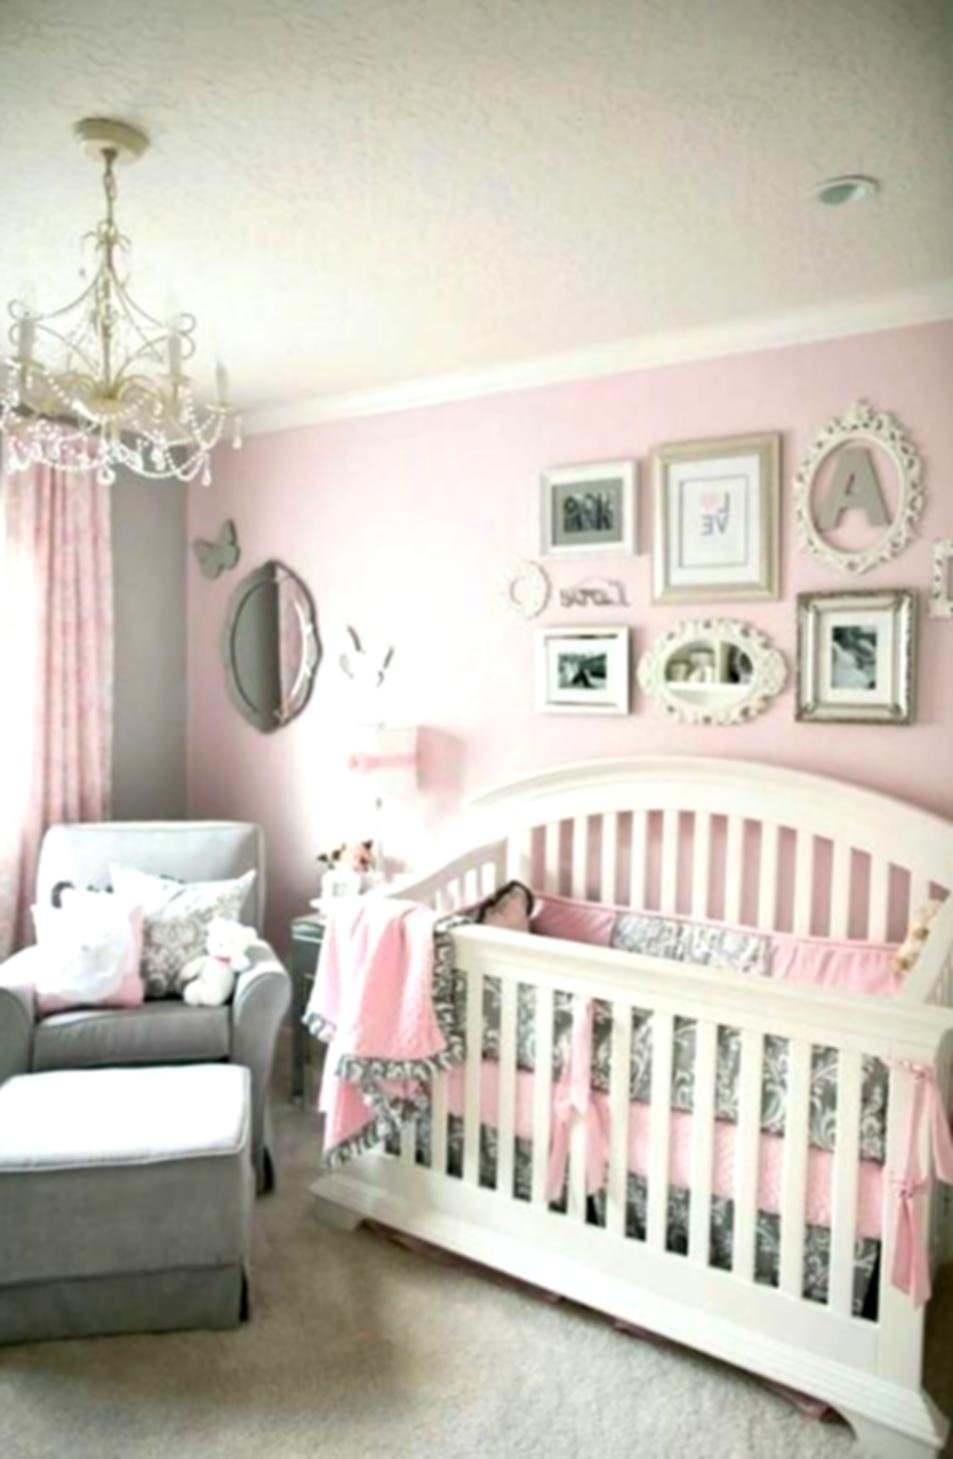 10 Spectacular Cute Baby Girl Picture Ideas modern baby room ideas for girls saomc co 2021